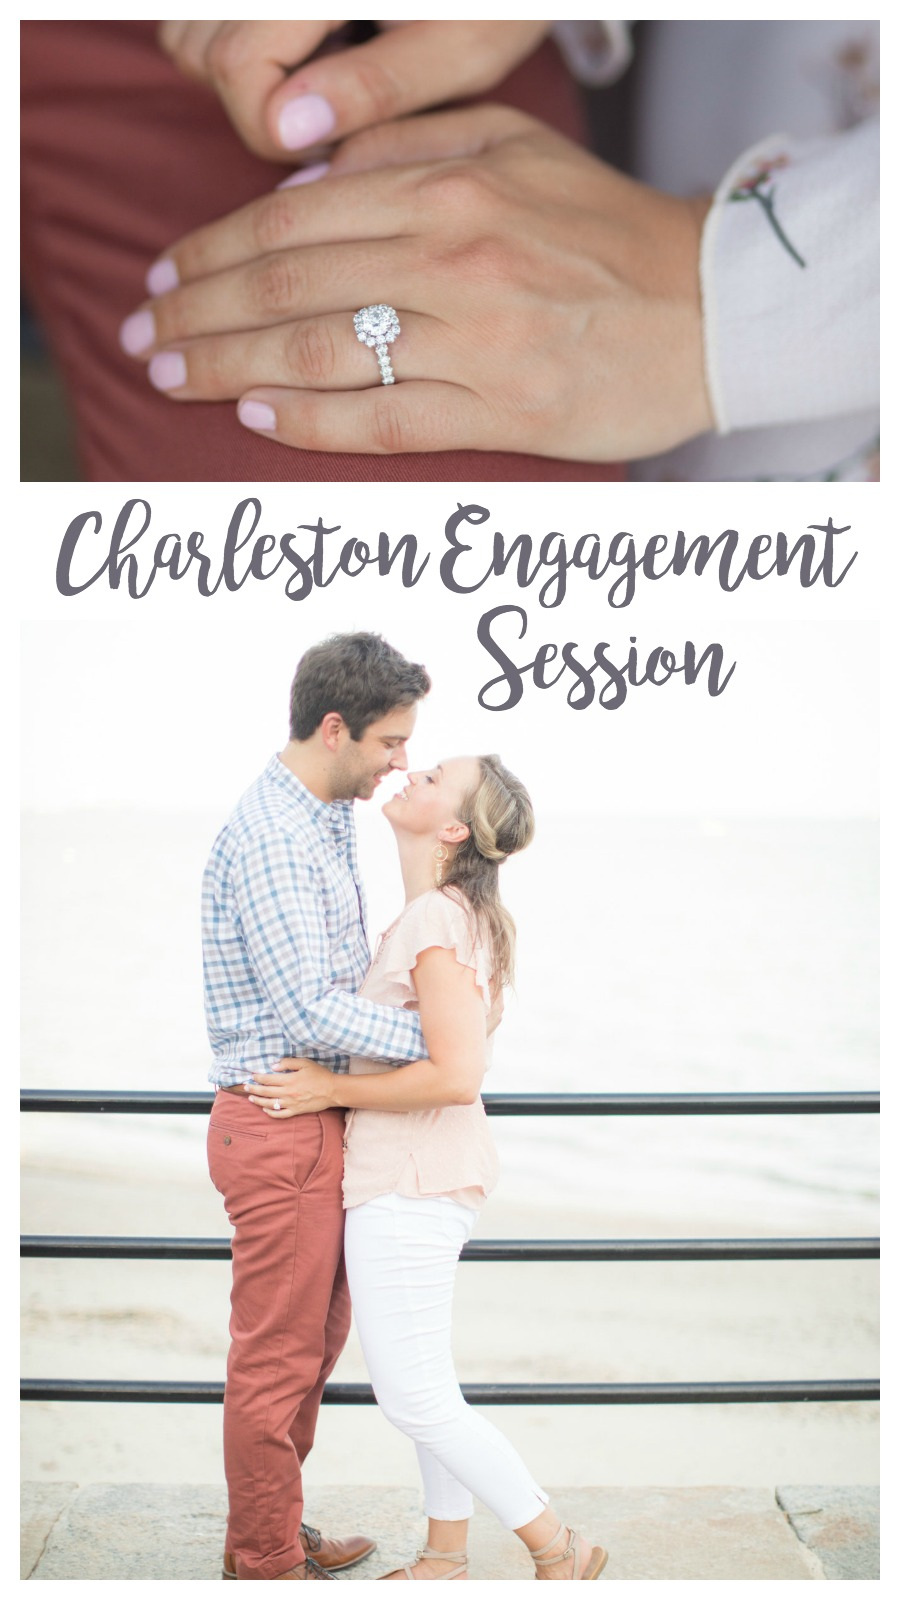 Kelsey and Chris: Downtown Charleston Engagement Session | Palmetto State Weddings | Kelly Vann Calaway Photography and Copahee Media | engagement session inspiration | engagement photography